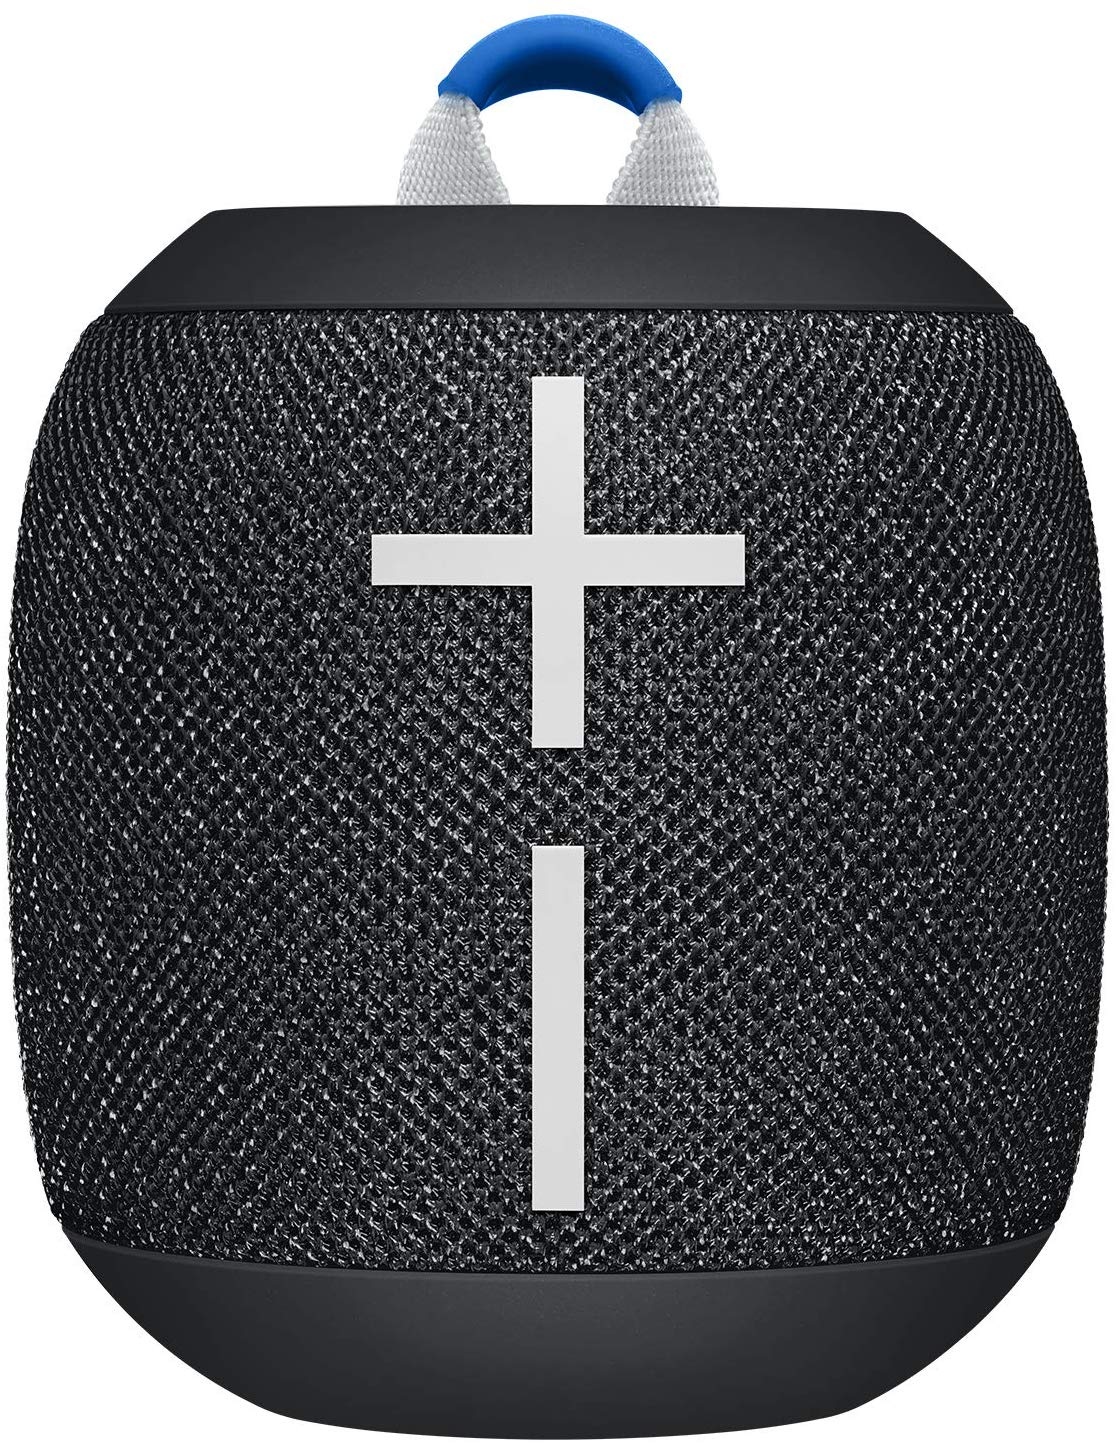 http://Ultimate%20Ears%20WONDERBOOM%202%20wireless%20bluetooth%20and%20360%20degree%20sound%20stereo